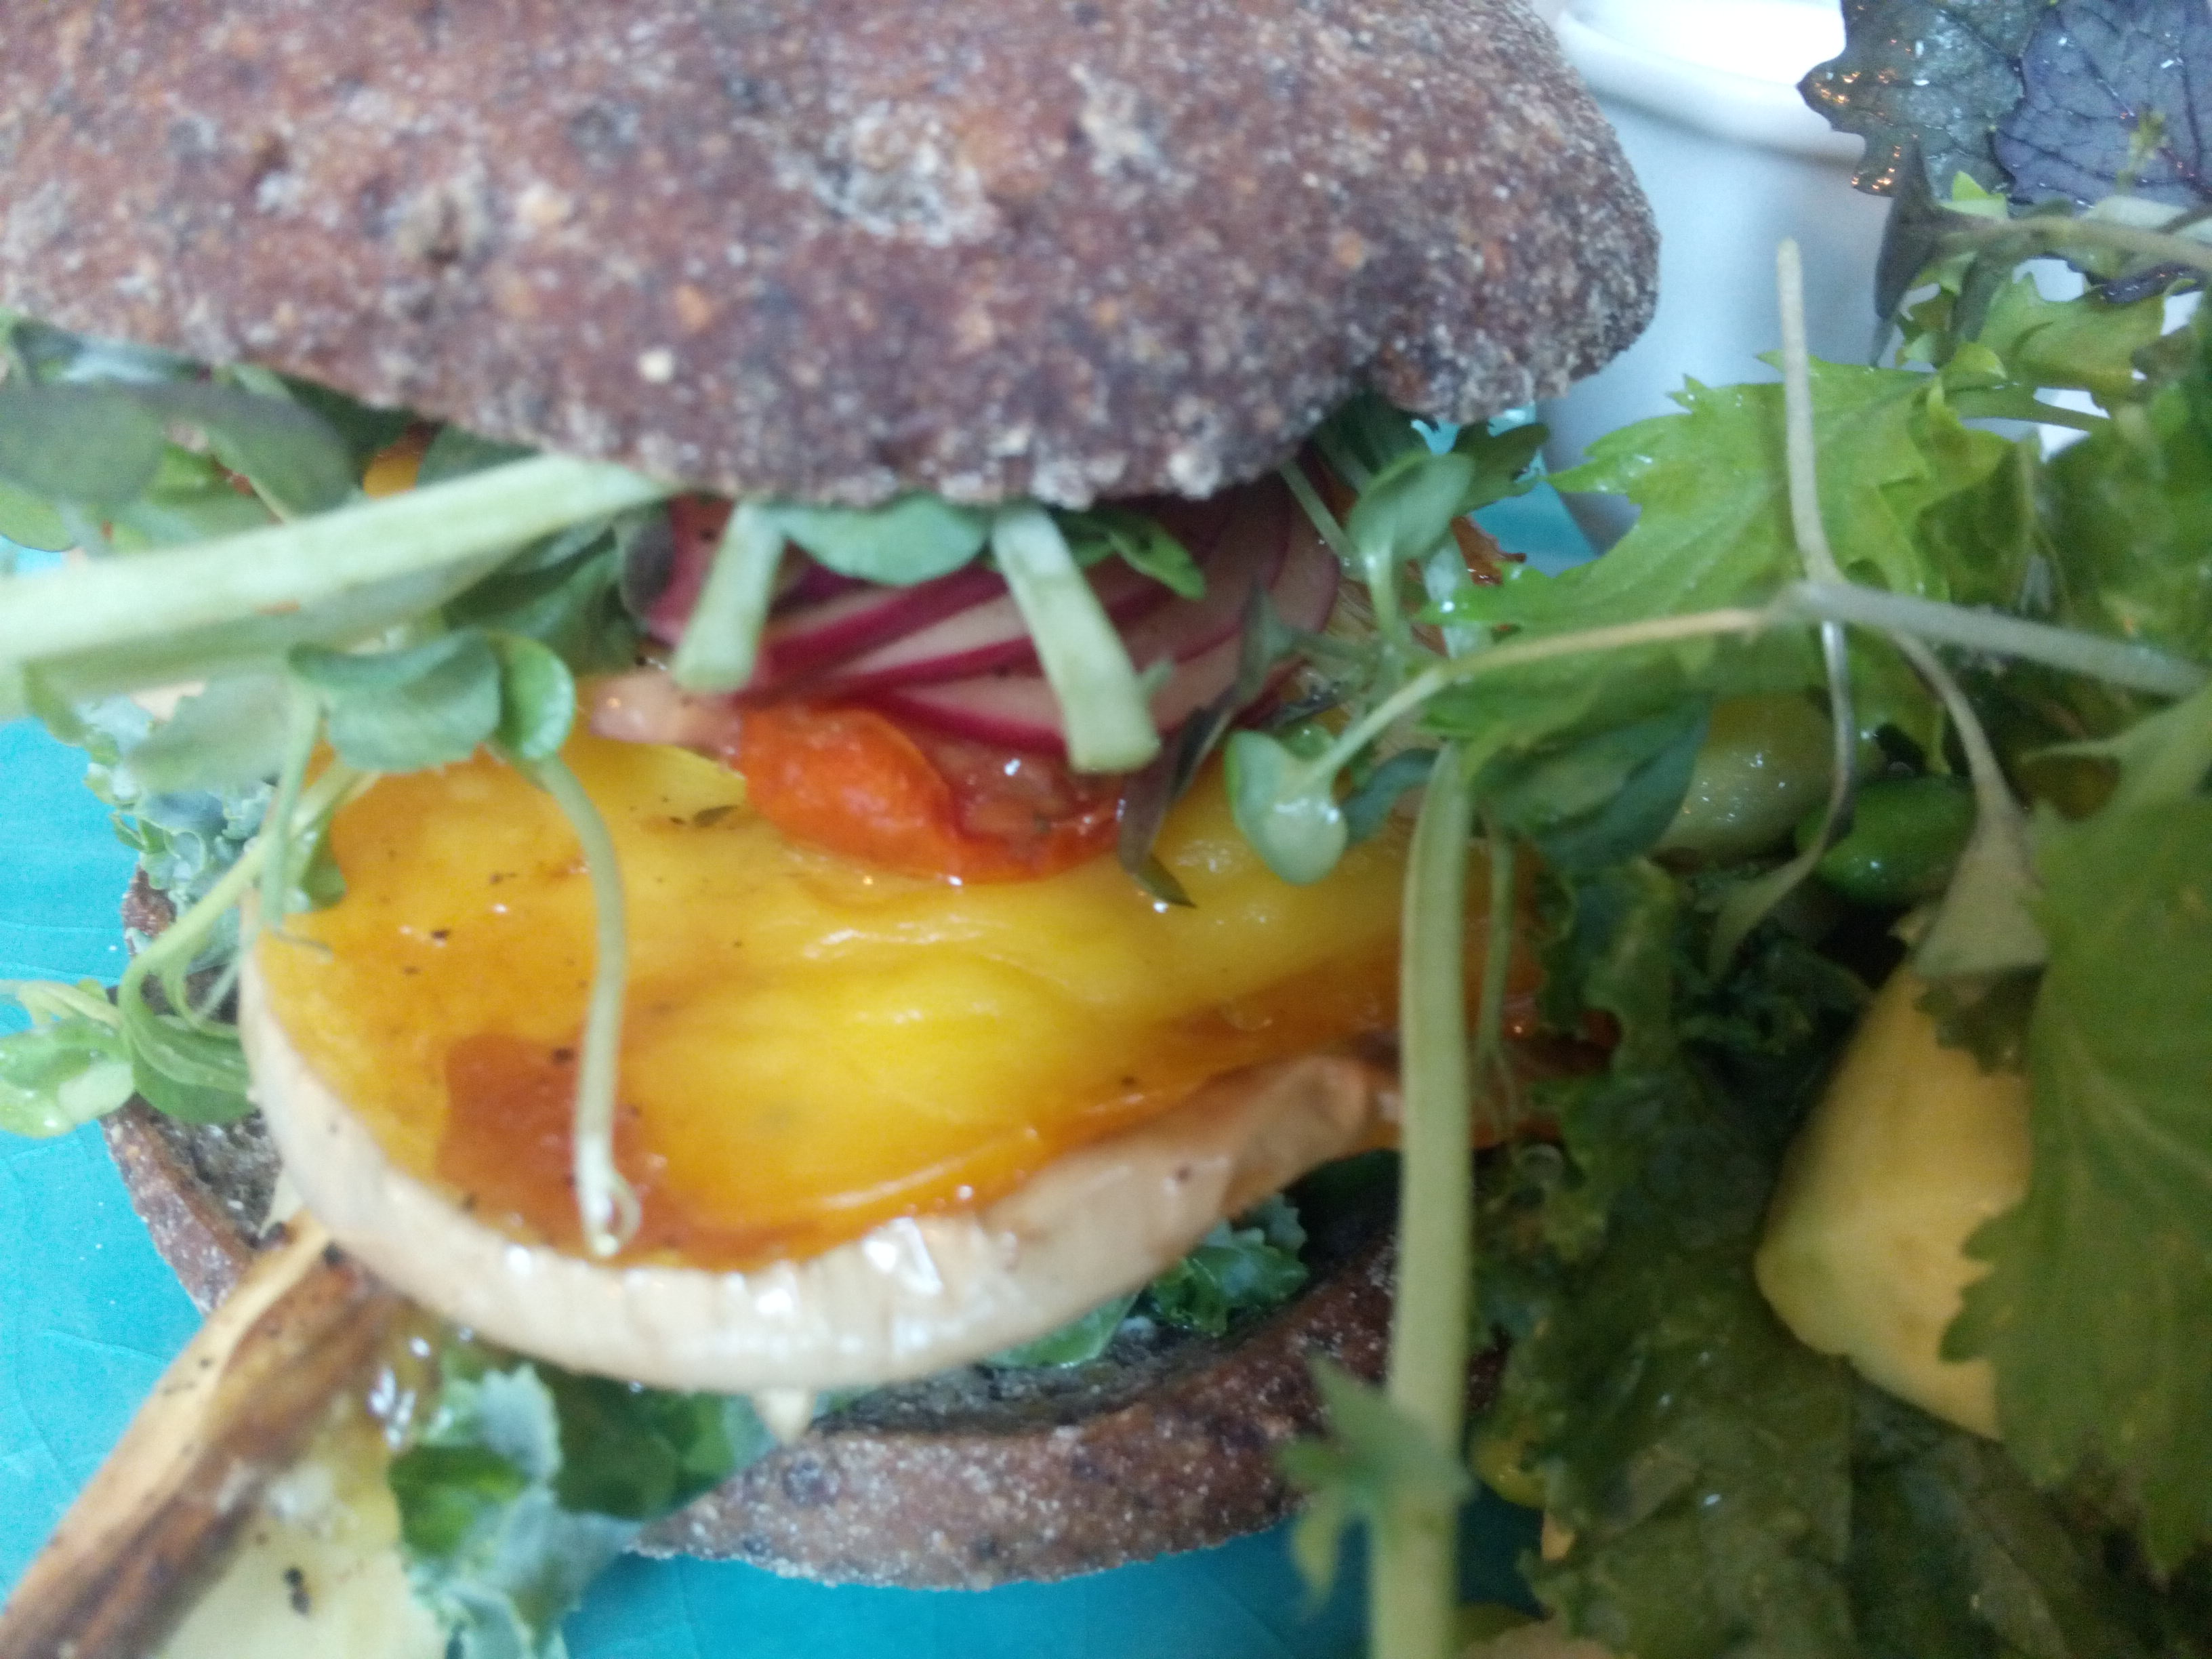 A close up of root vegetable burger with leaves, radish and cheesey sweet potato poking out